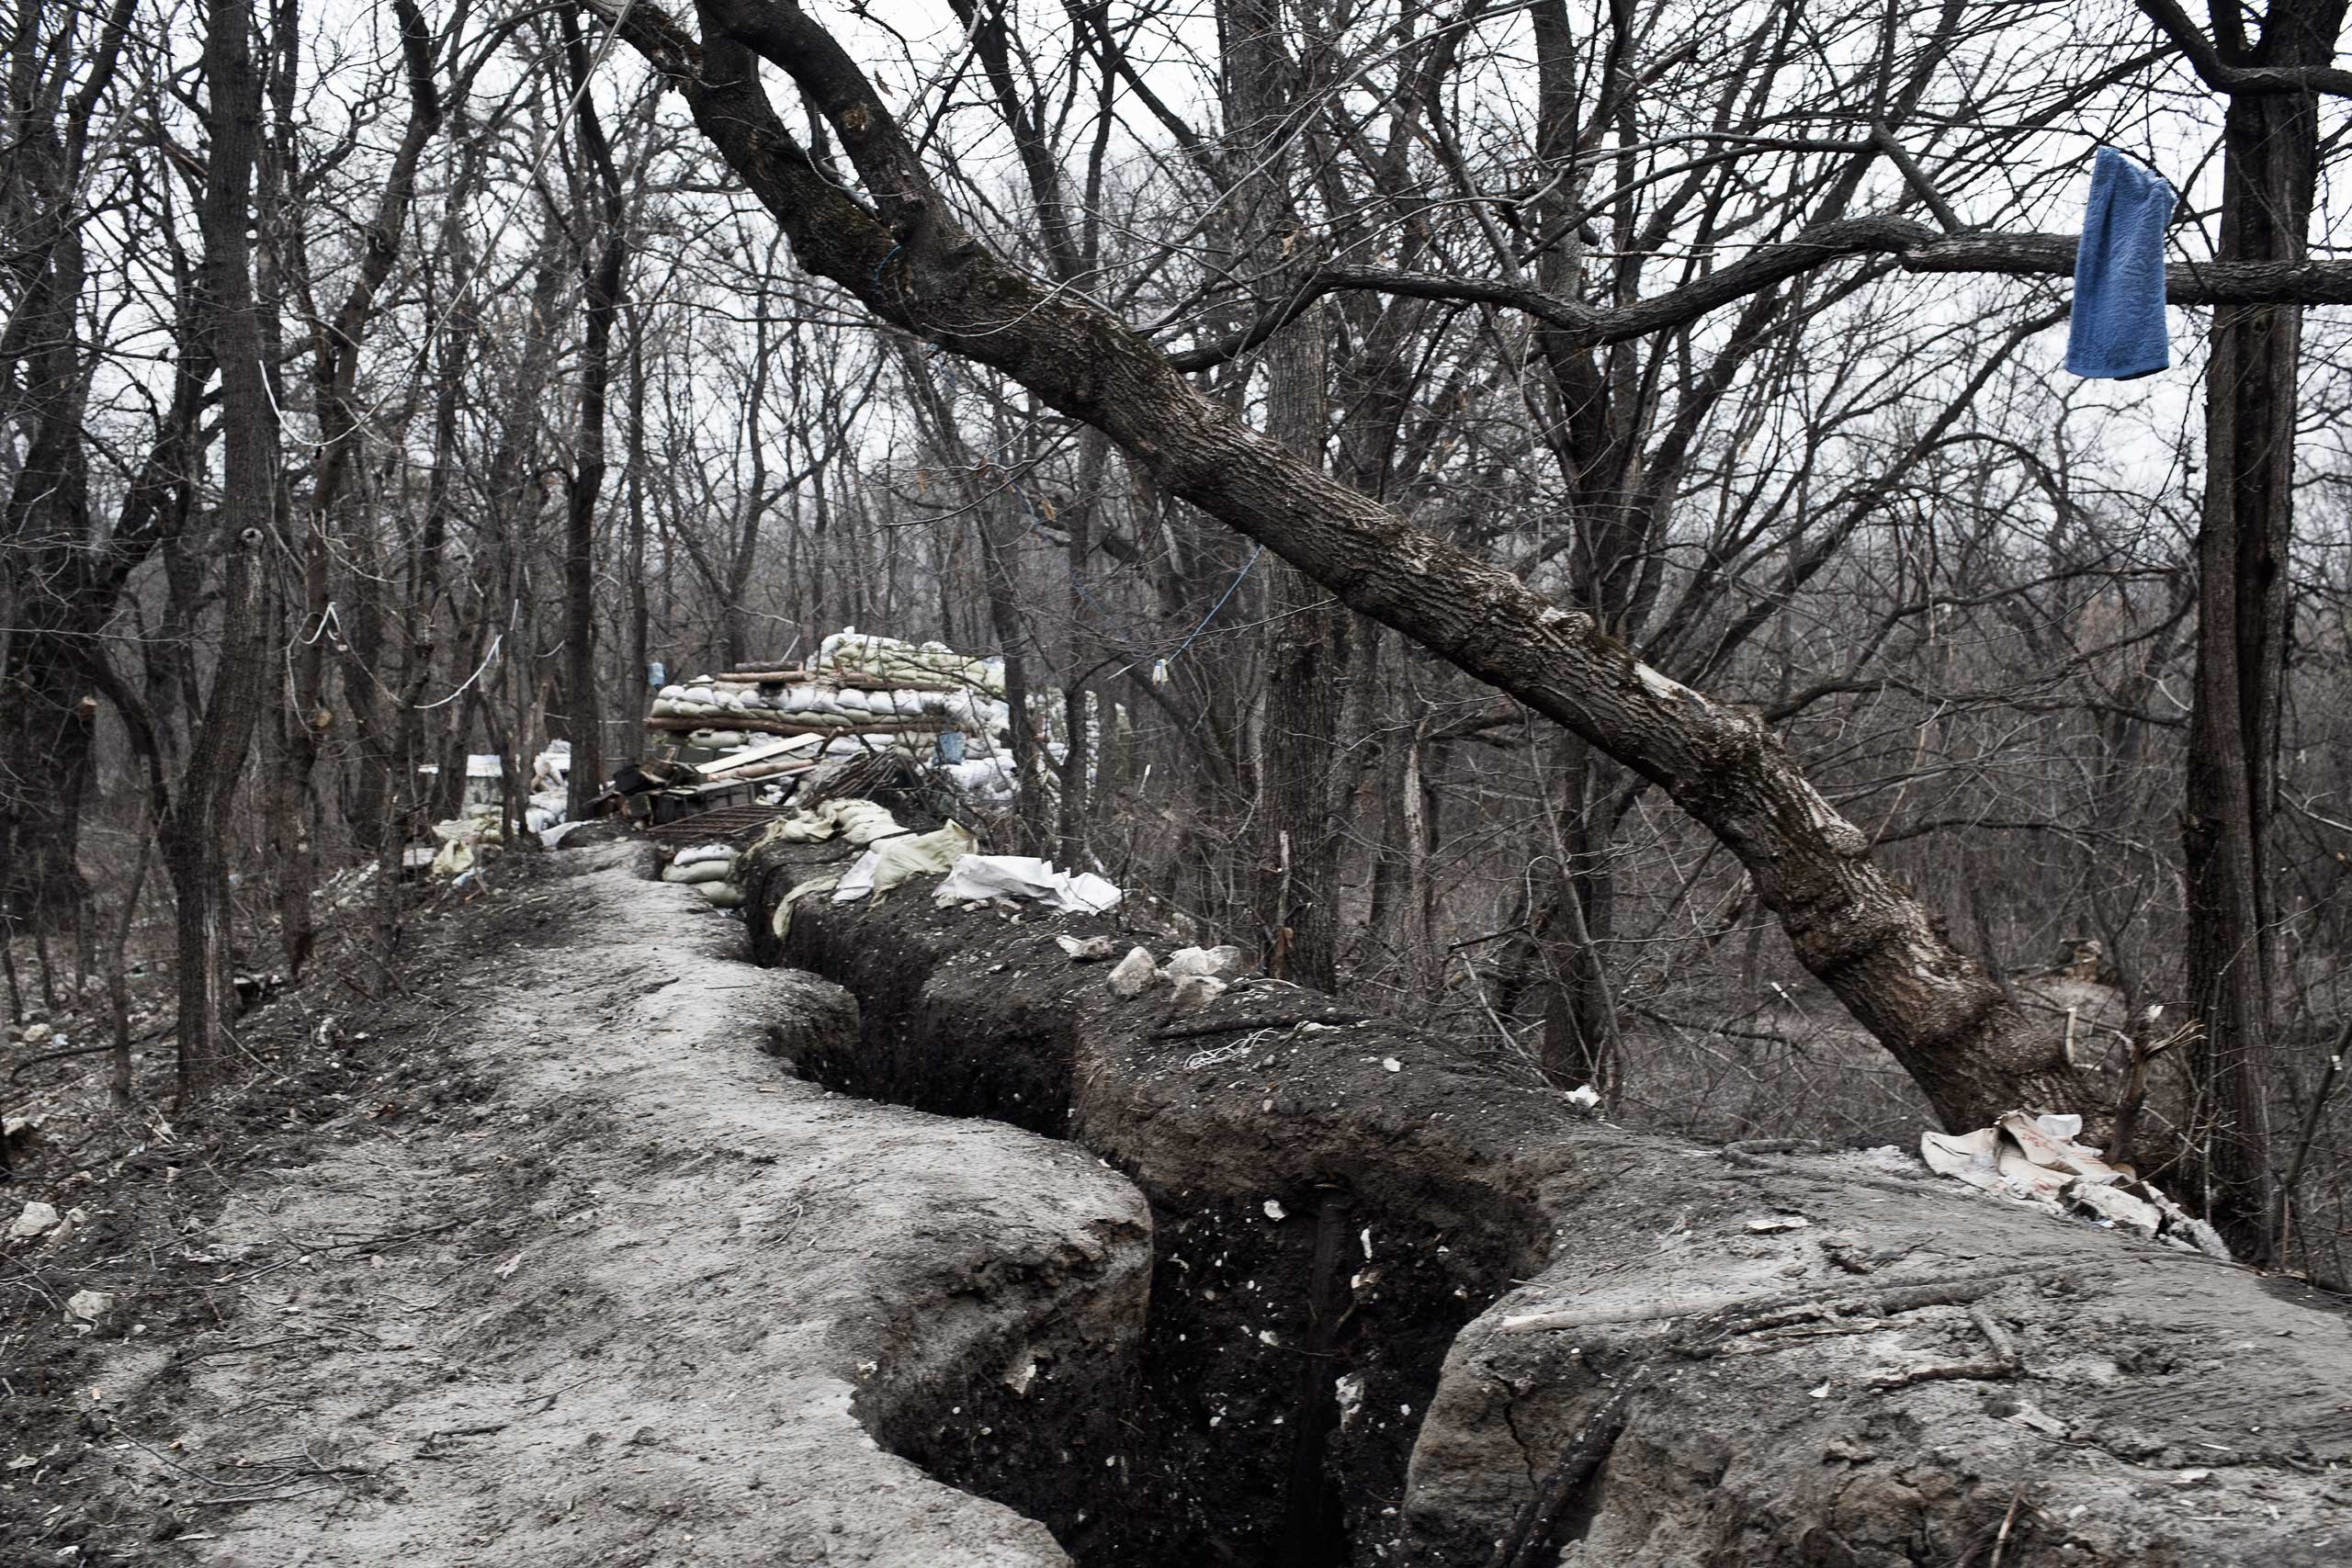 A frontline trench in Shastya, eastern Ukraine, where fighting was ongoing between Ukrainian military and volunteer fighters against the Russian supported forces of the breakaway Luhansk People's Republic, Feb. 8, 2015.